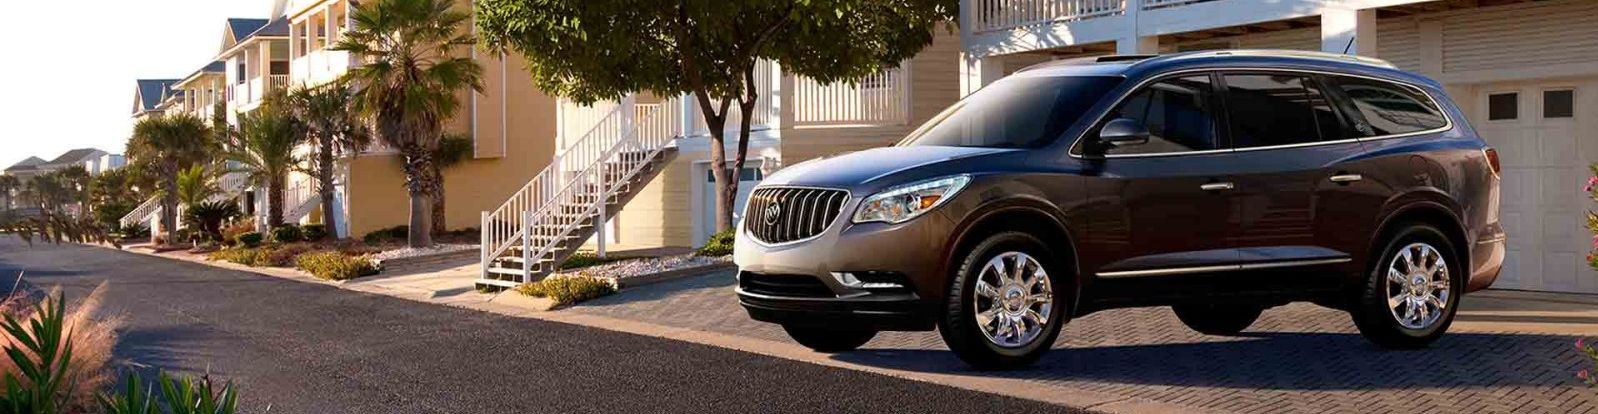 2017 Buick Enclave for Sale near Salem, OH